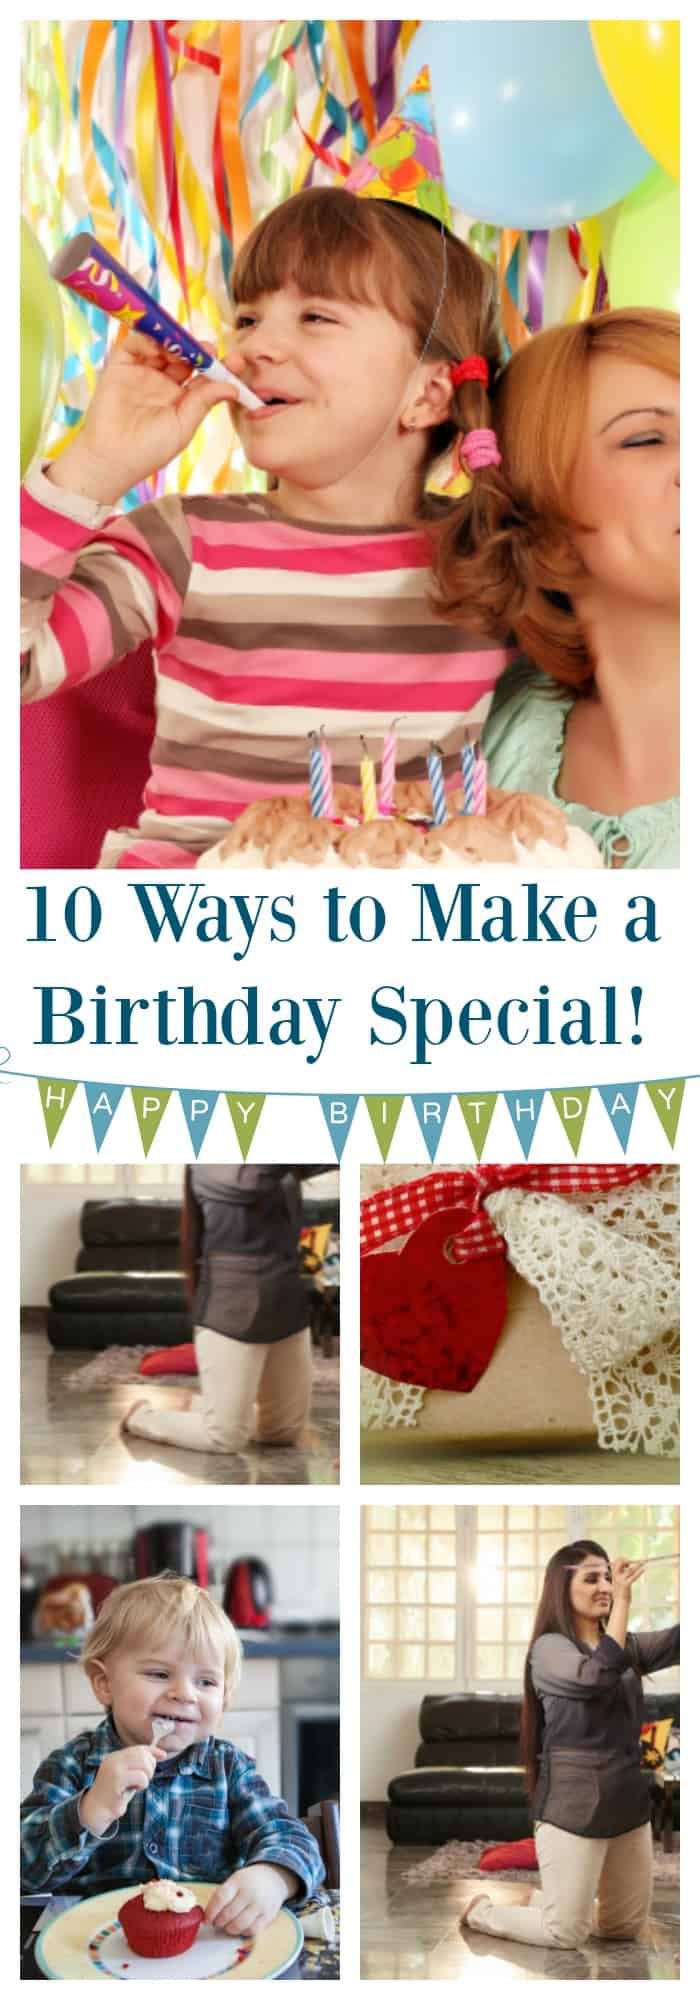 10 creative, clever and new ways to make a birthday special for your kid!